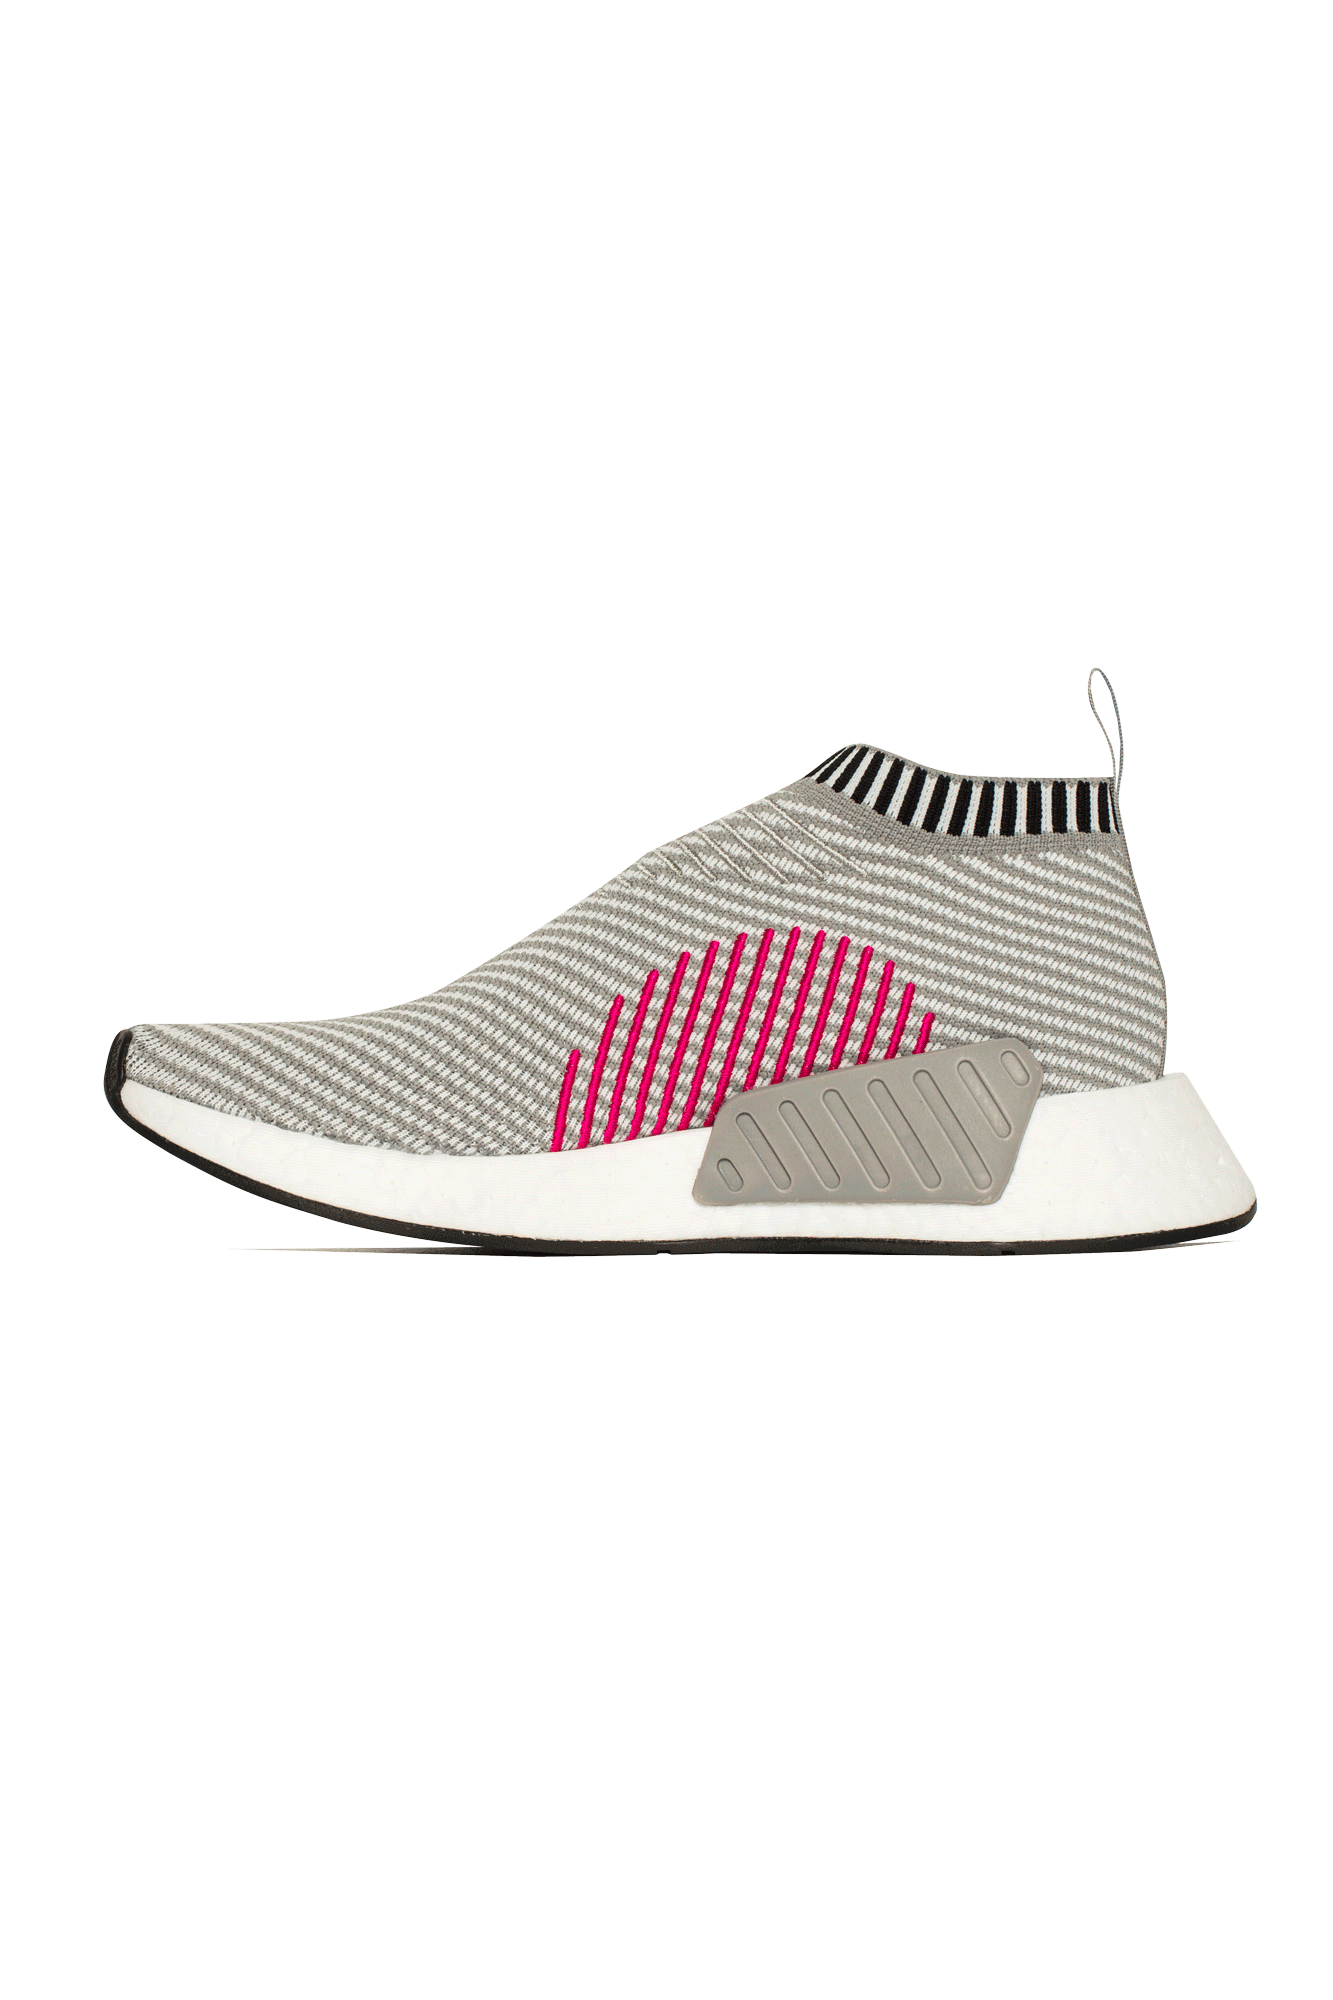 adidas Originals NMD CS2 PK City Sock Primeknit Boost (schwarz rot) (EU 47 13 US 12.5)